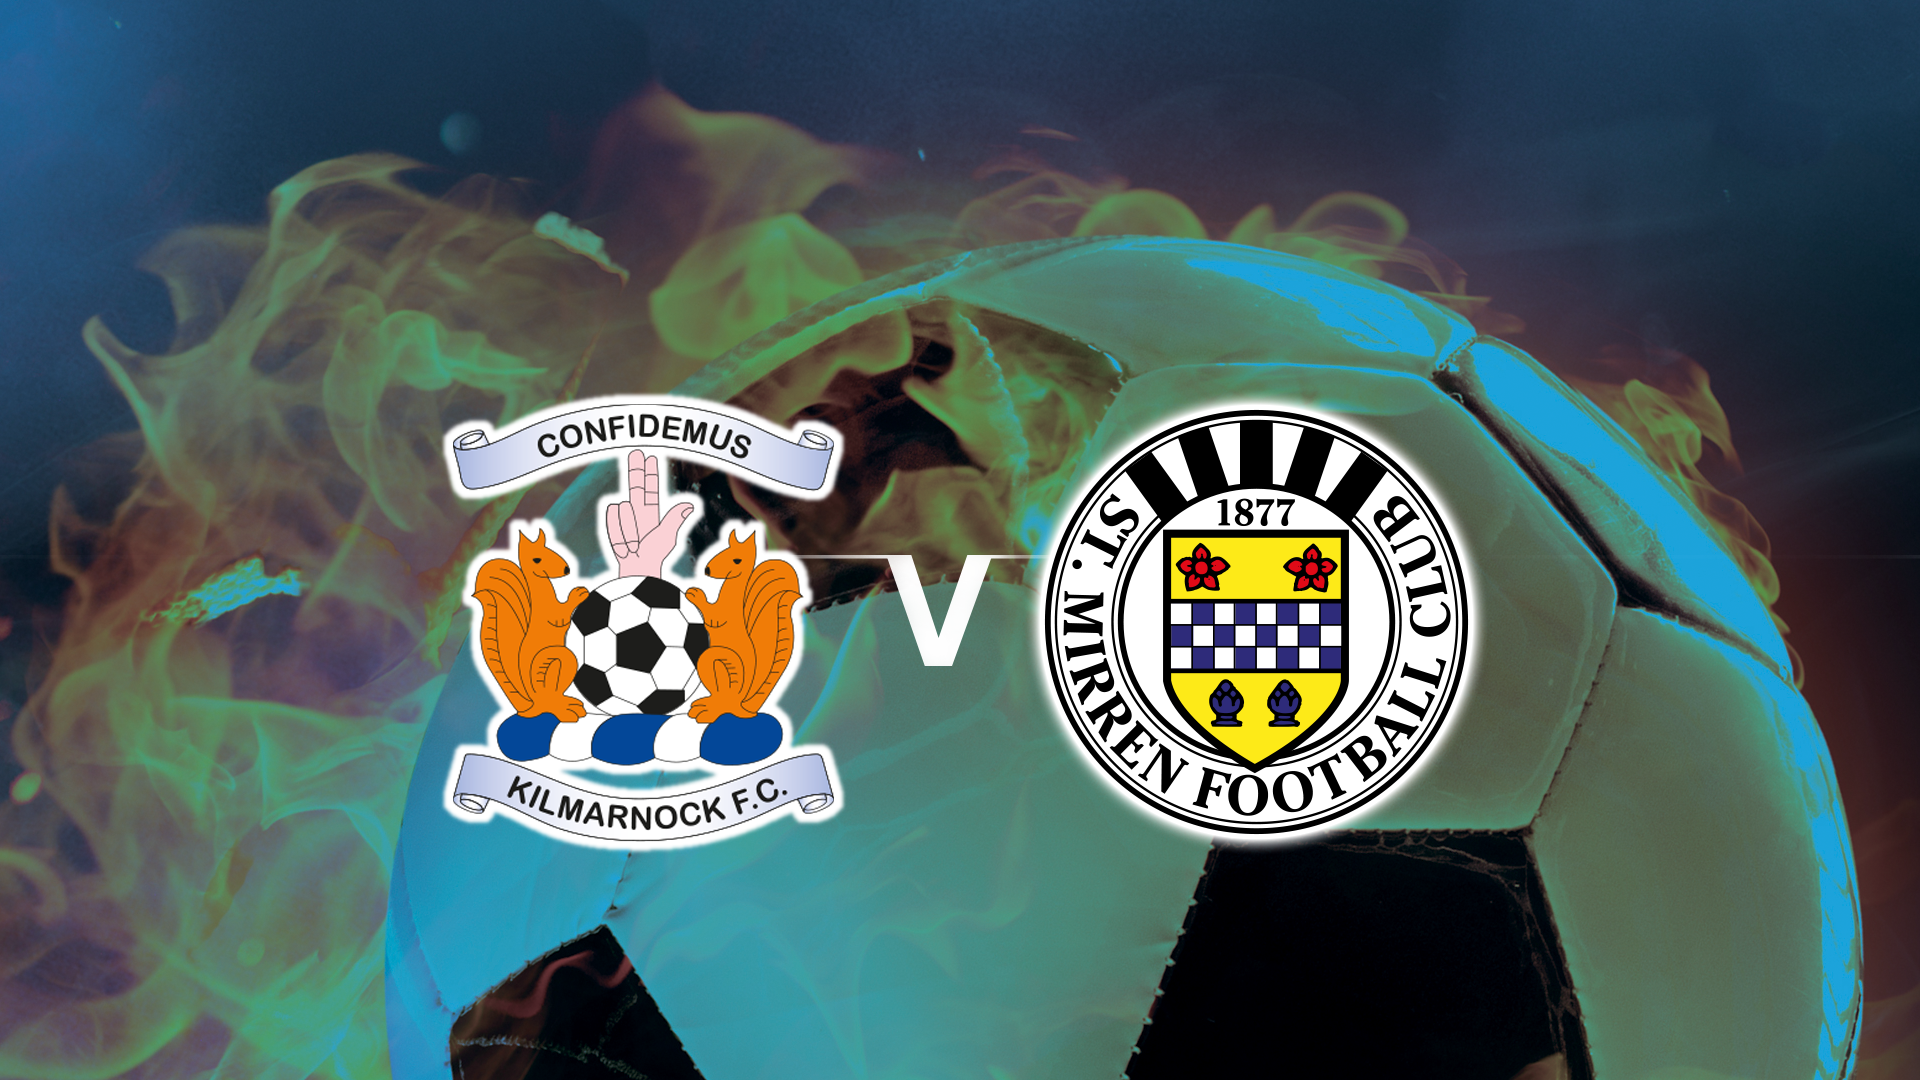 Match Day Offers, Kilmarnock Vs St Mirren - Saturday 26th October